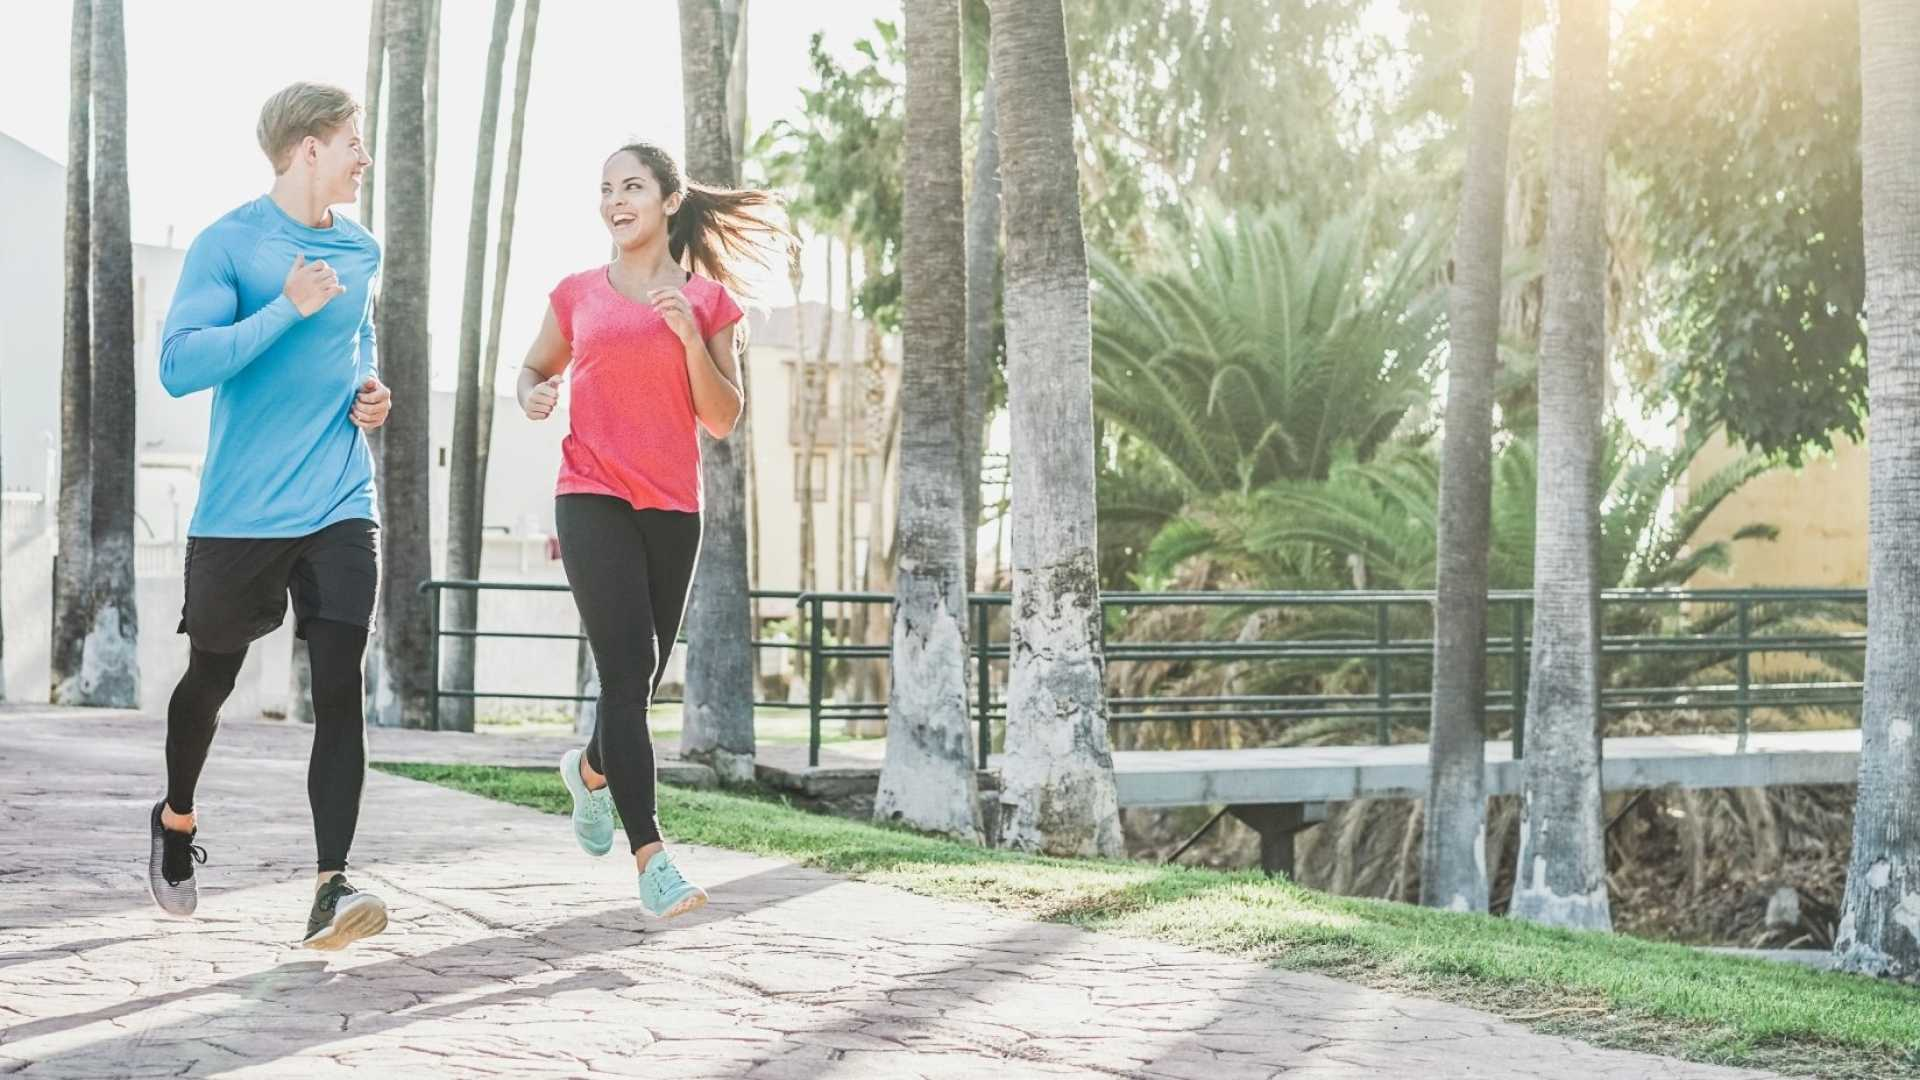 This Just Might Be the Most Compelling Reason to Get More Exercise (and It Has Nothing to Do With Weight Loss or Longevity)